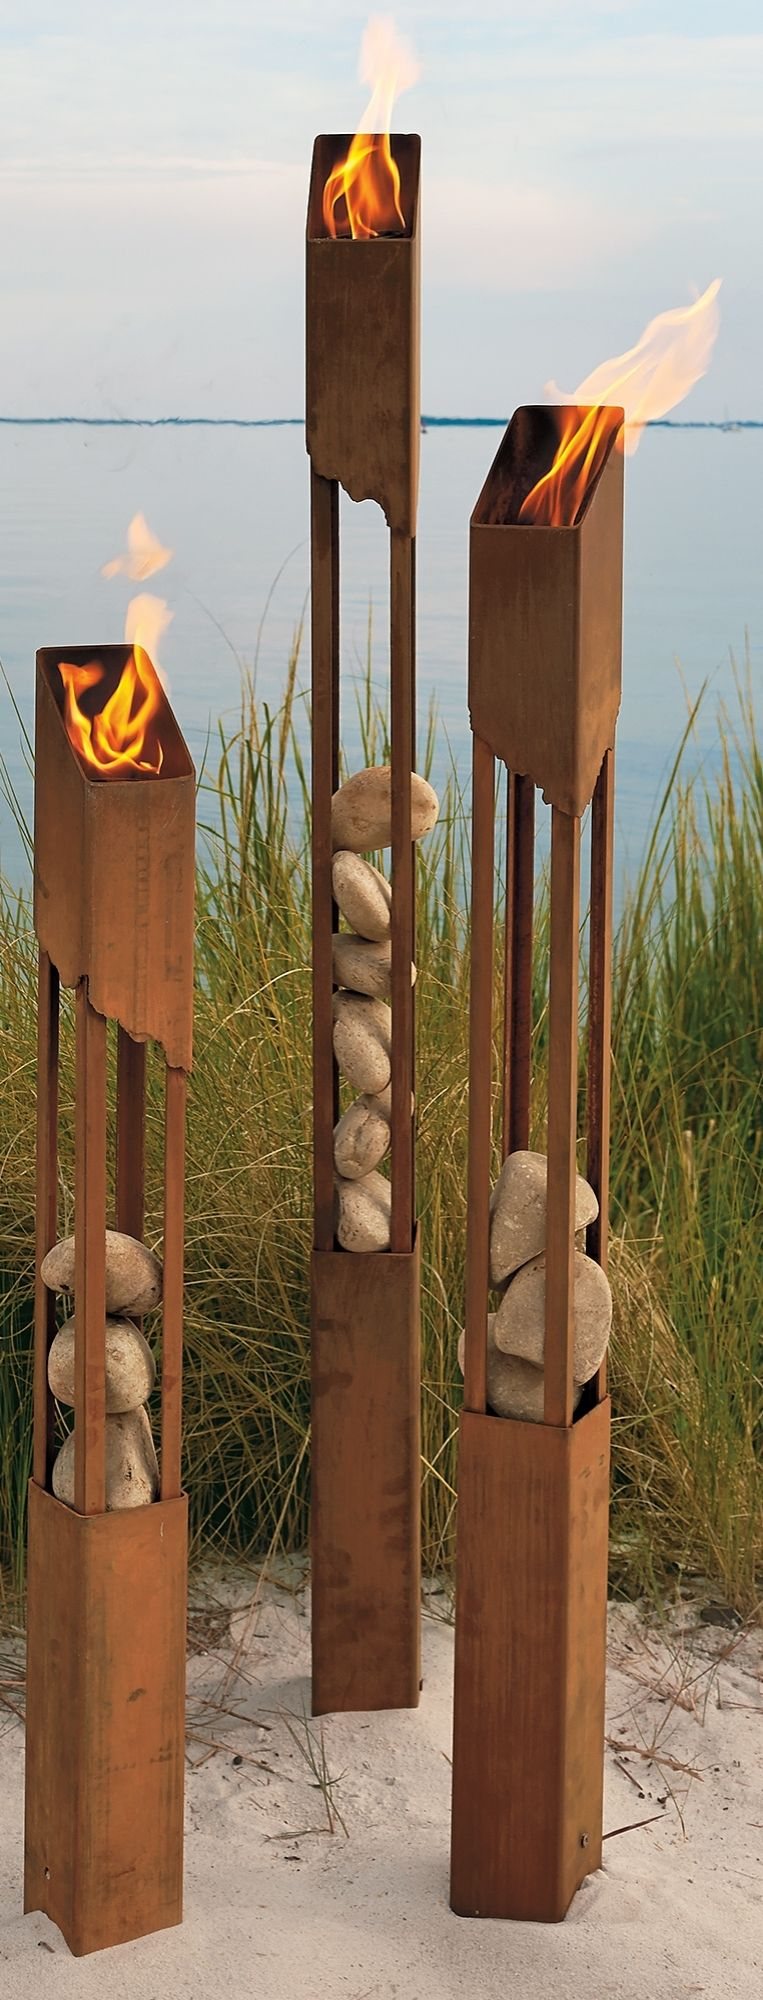 The Raw, Artistic Feel Of Our Mesa Torches Will Fill Any ... pour Torches De Jardin